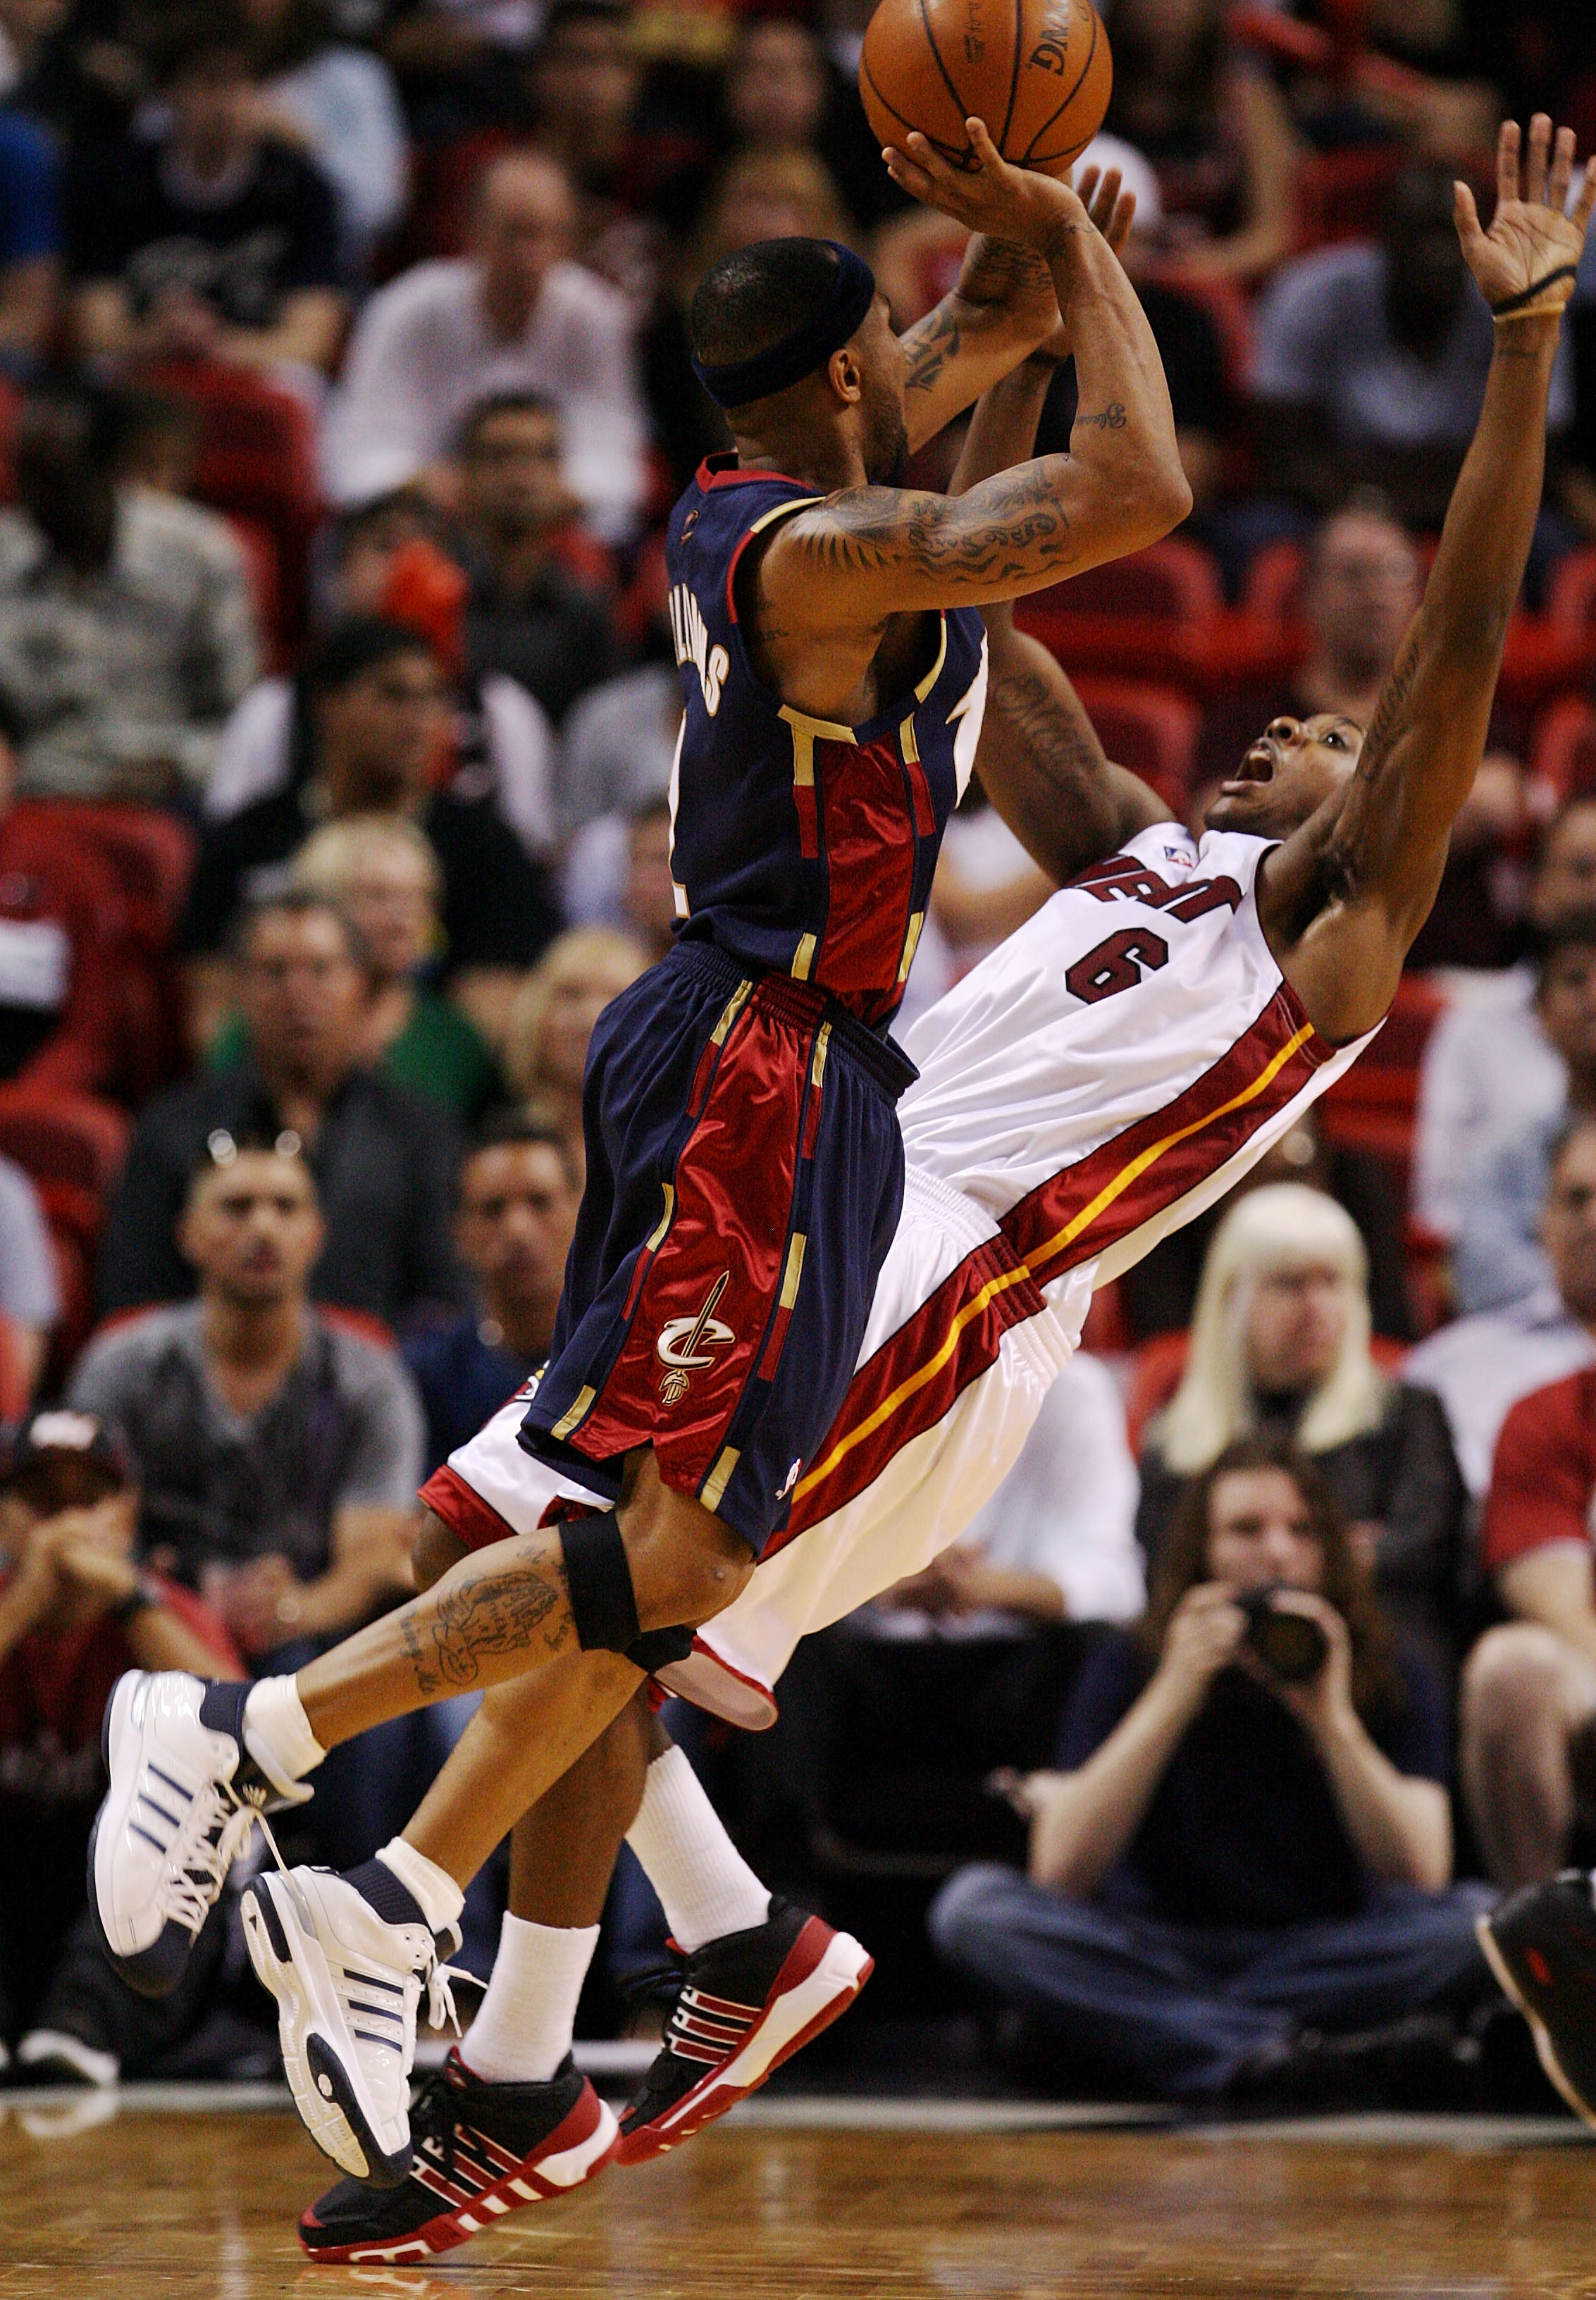 MIAMI - DECEMBER 30:  Mario Chalmers #6 of the Miami Heat draws an offensive foul on Mo Williams #2 of the Cleveland Cavaliers at American Airlines Arena on December 30, 2008 in Miami, Florida. The Heat defeated the Cavaliers 104-95. NOTE TO USER: User ex